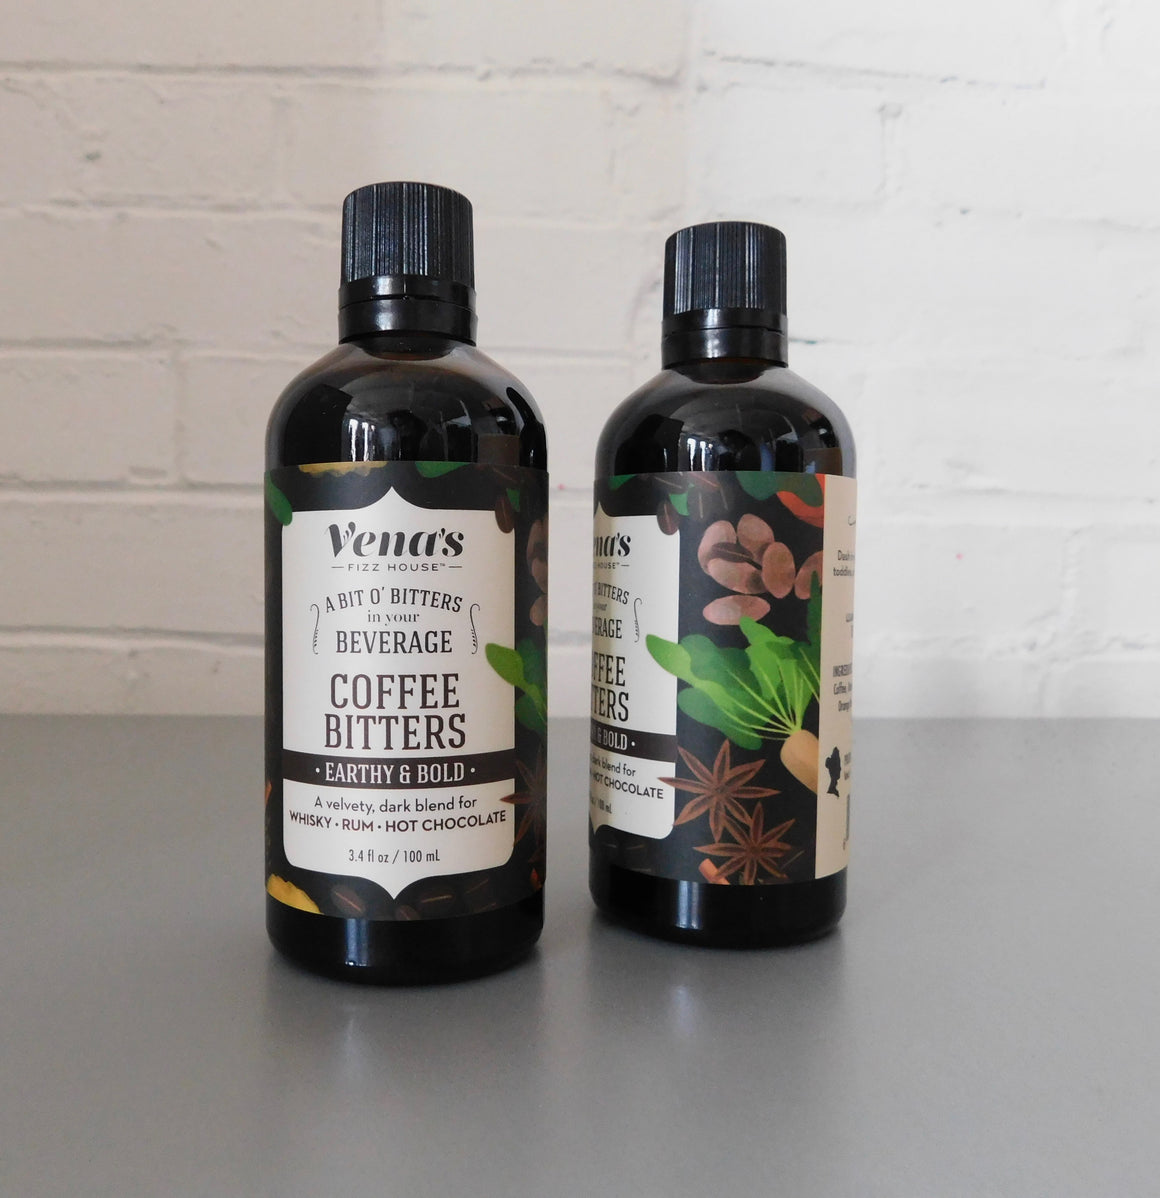 Vena's Coffee Bitters, 12 bottles per case